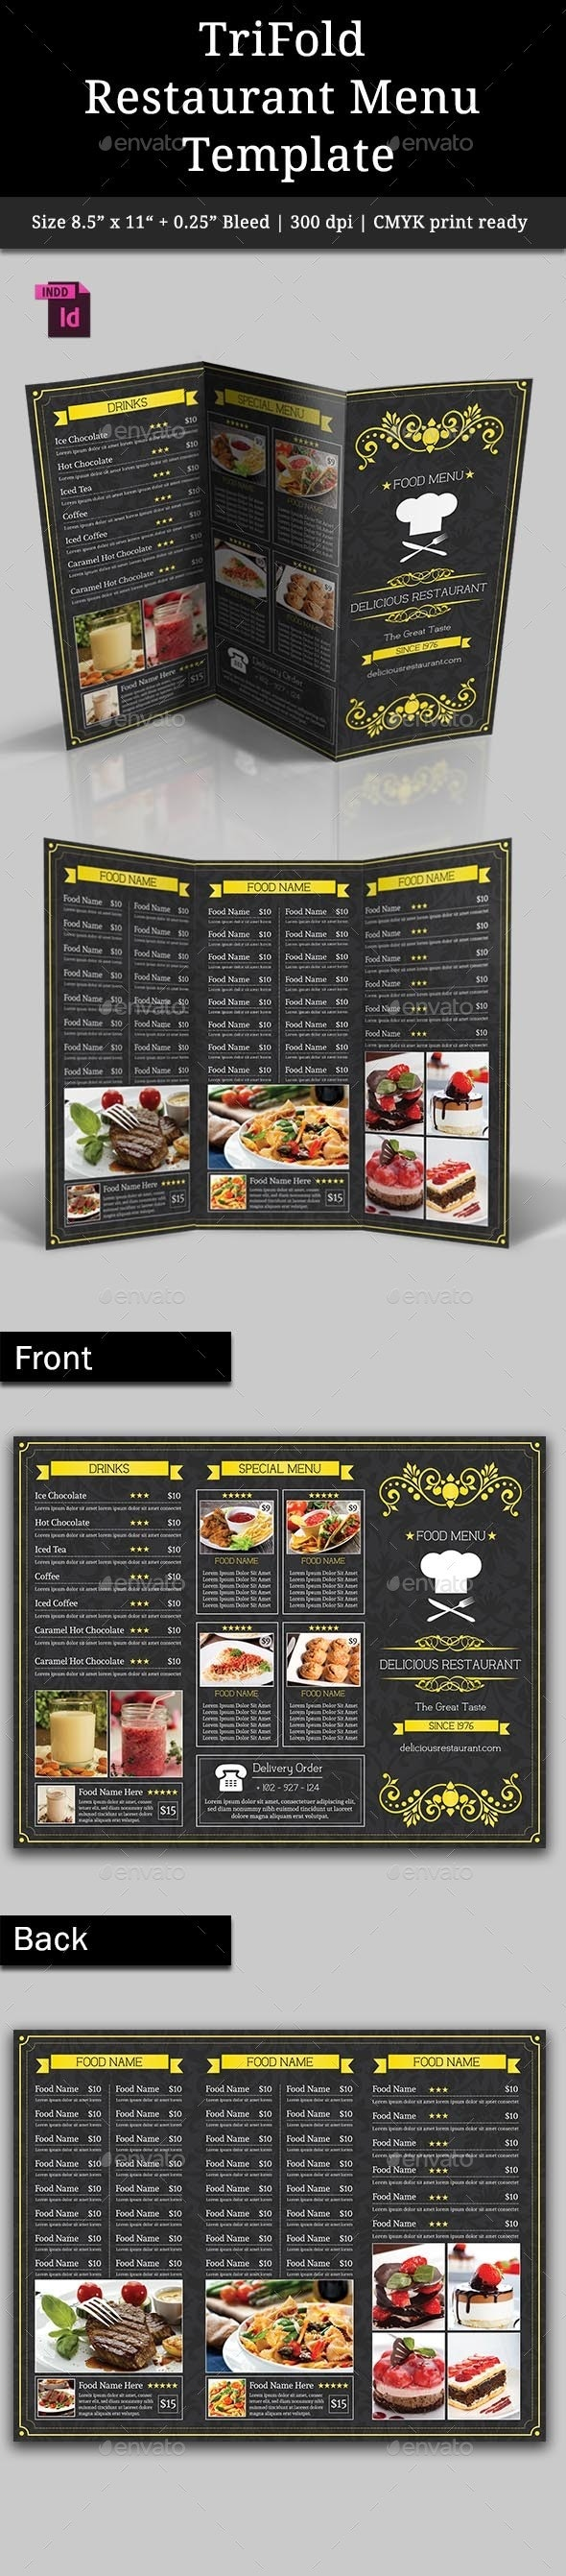 TriFold Restaurant Menu Template Vol. 3 - Food Menus Print Templates